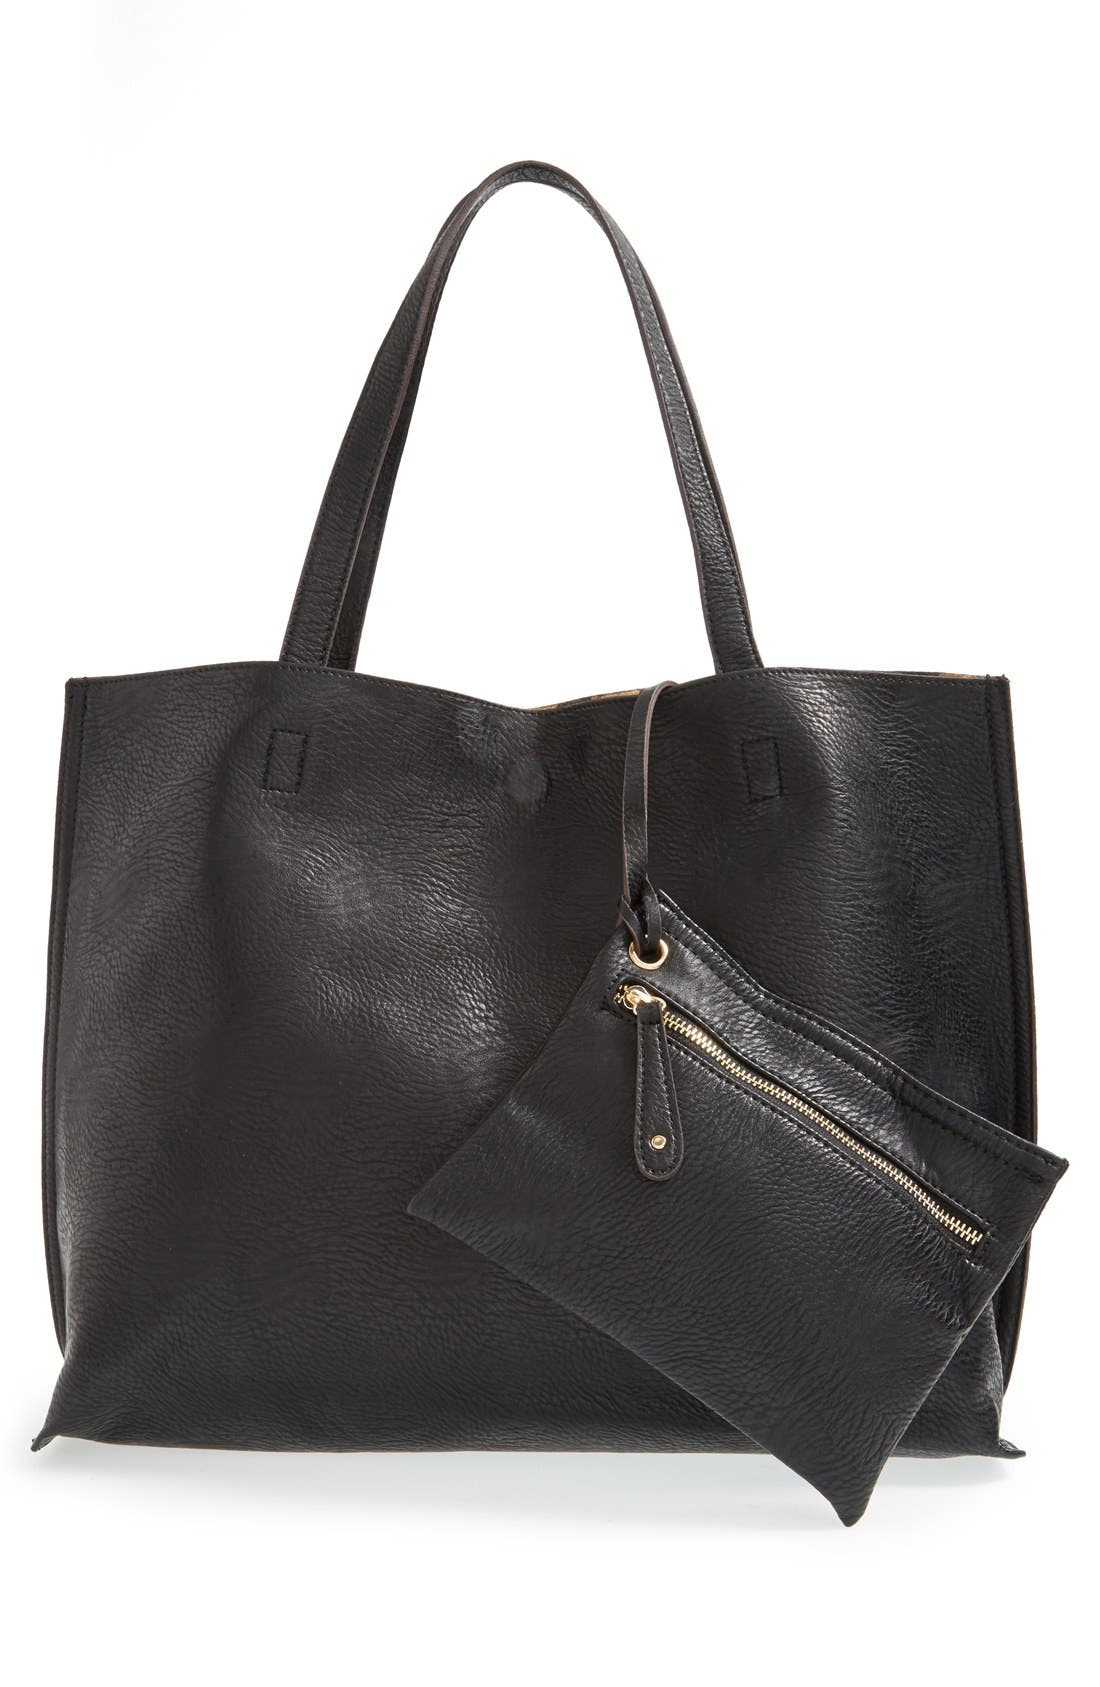 STREET LEVEL, Reversible Faux Leather Tote, Alternate thumbnail 2, color, 004